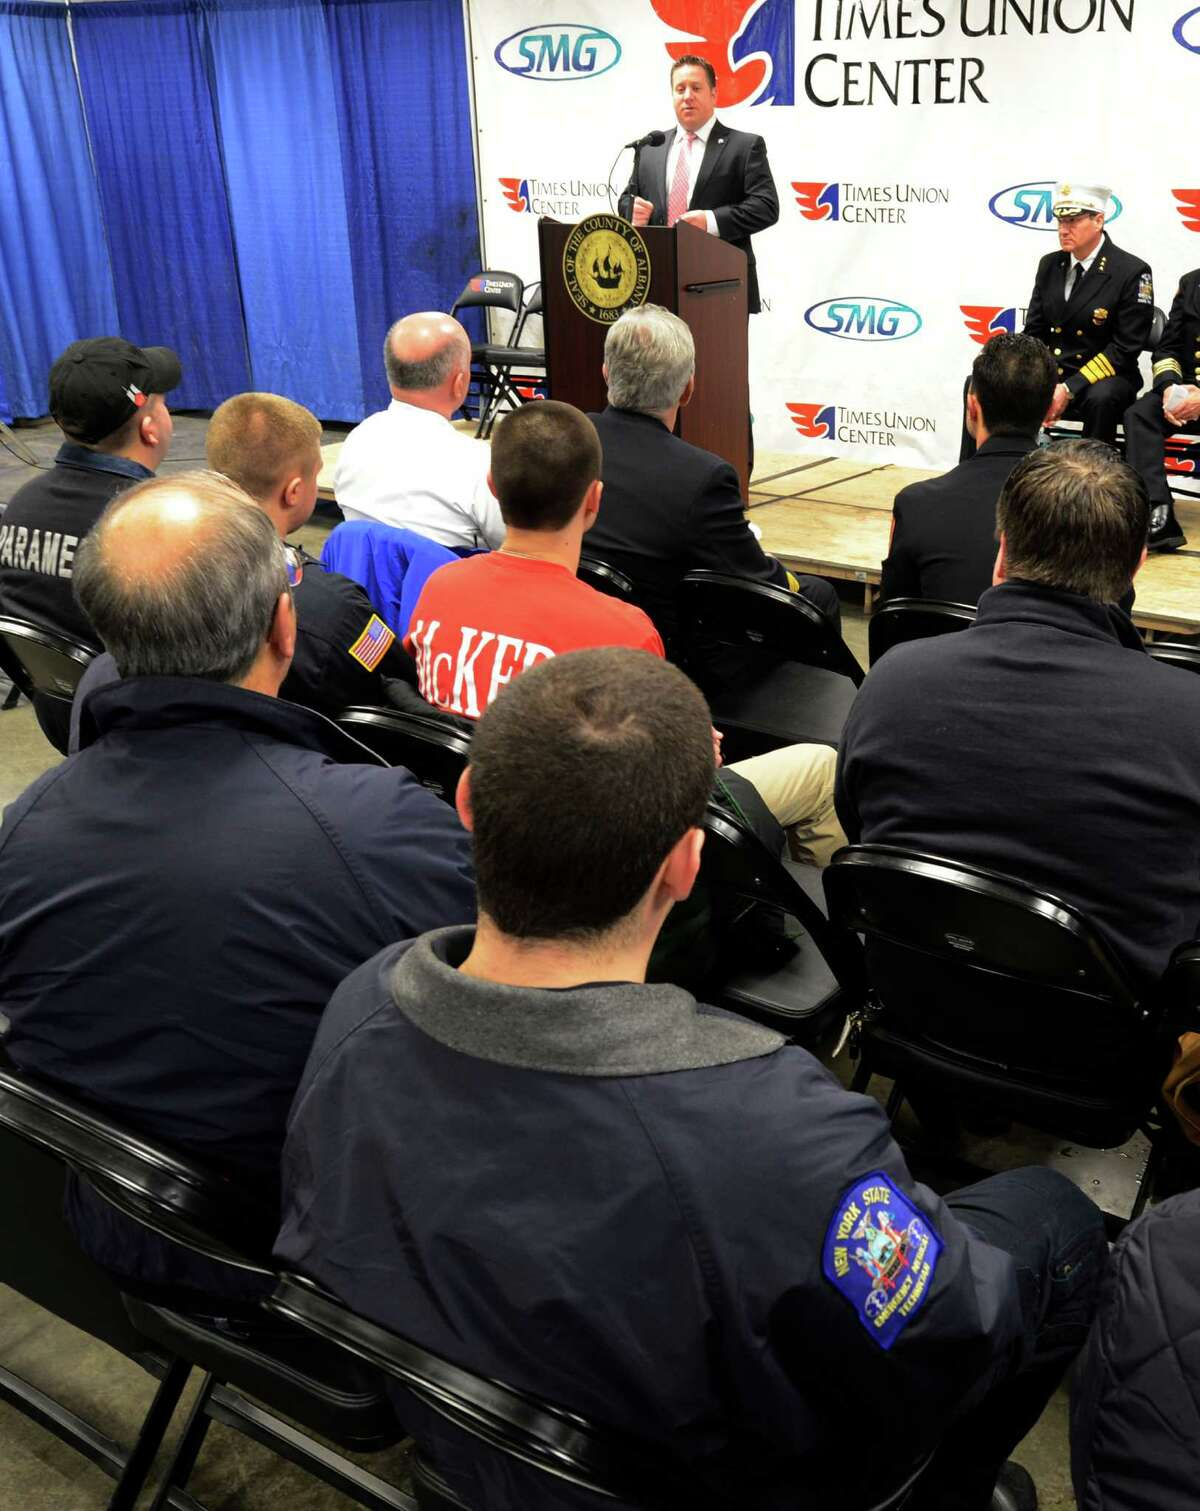 Albany County Executive Dan McCoy acknowledges the work done by Albany County firefighters that volunteers to work on Long Island during the Super Storm Sandy First Responder Recognition Program held at the Times Union Center in Albany, N.Y. Dec 27, 2012. (Skip Dickstein/Times Union)